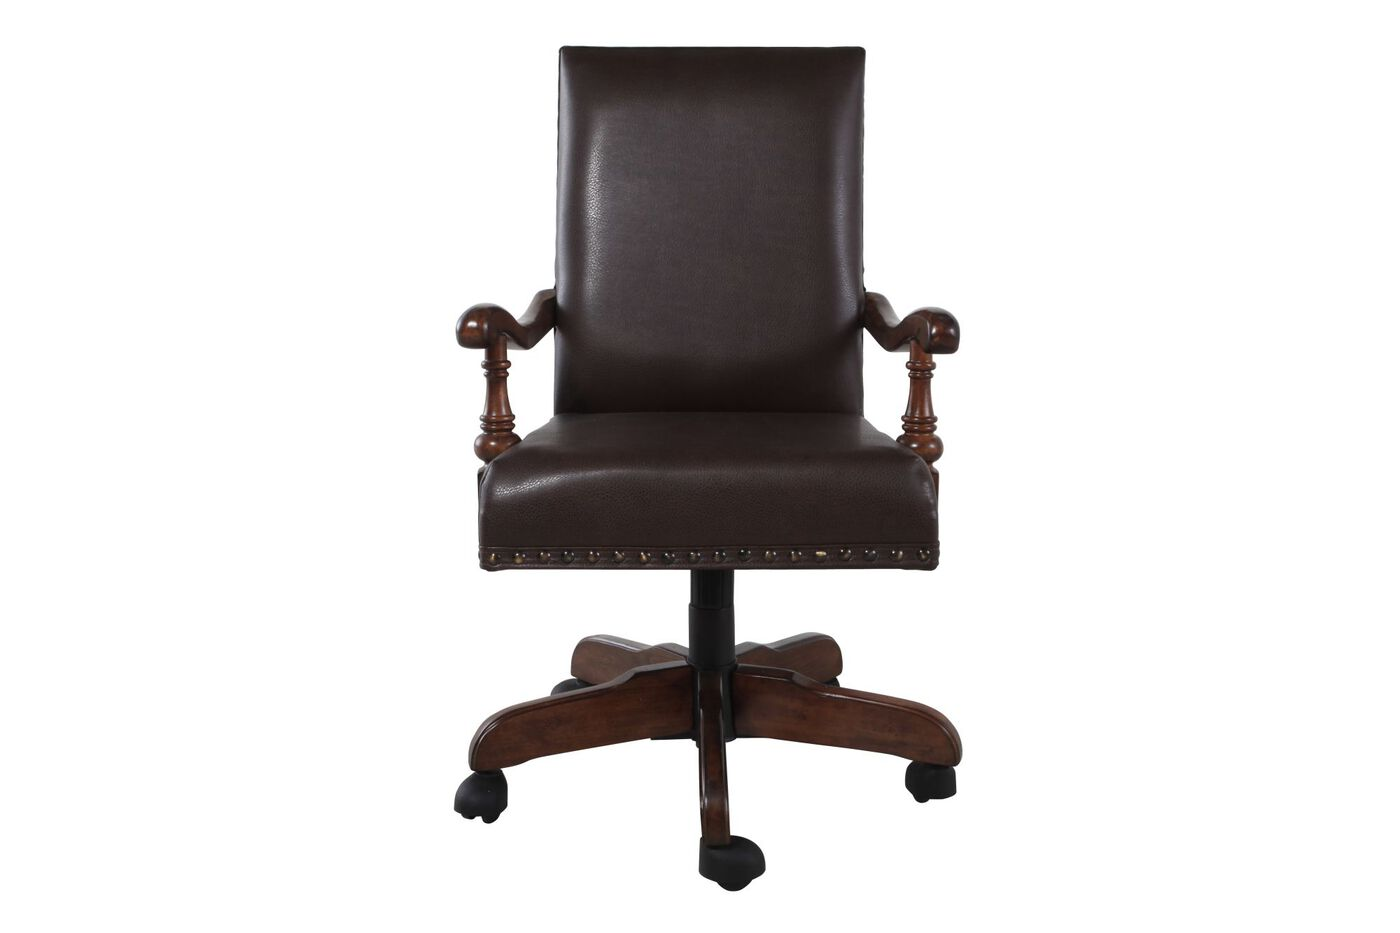 Ashley Gaylon Swivel fice Chair